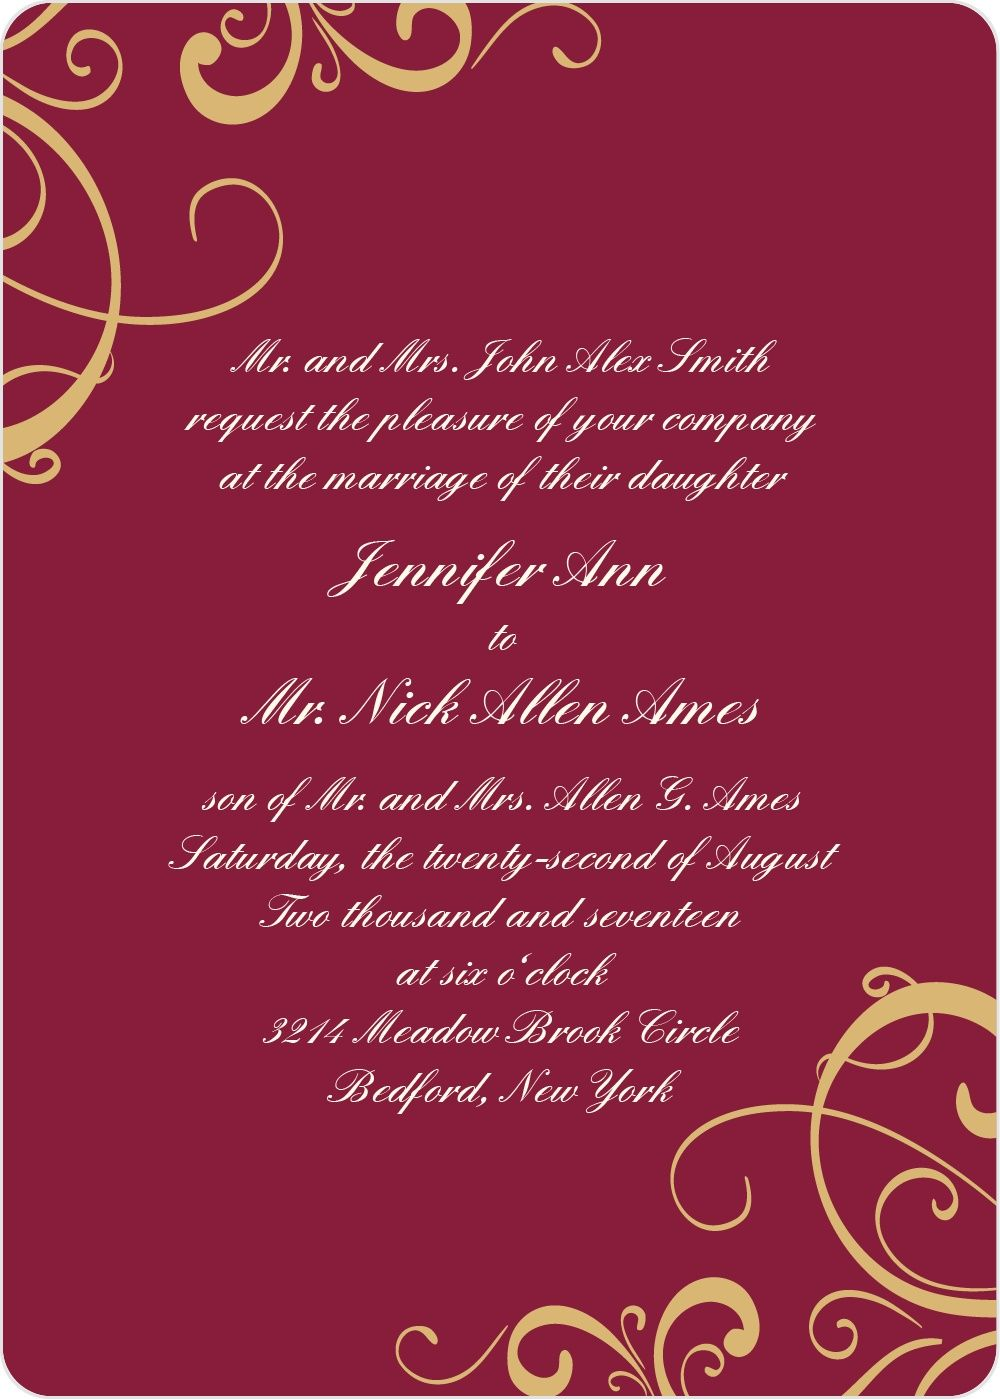 Simple Swirls Foil Wedding Invitation | Photo wedding invitations ...